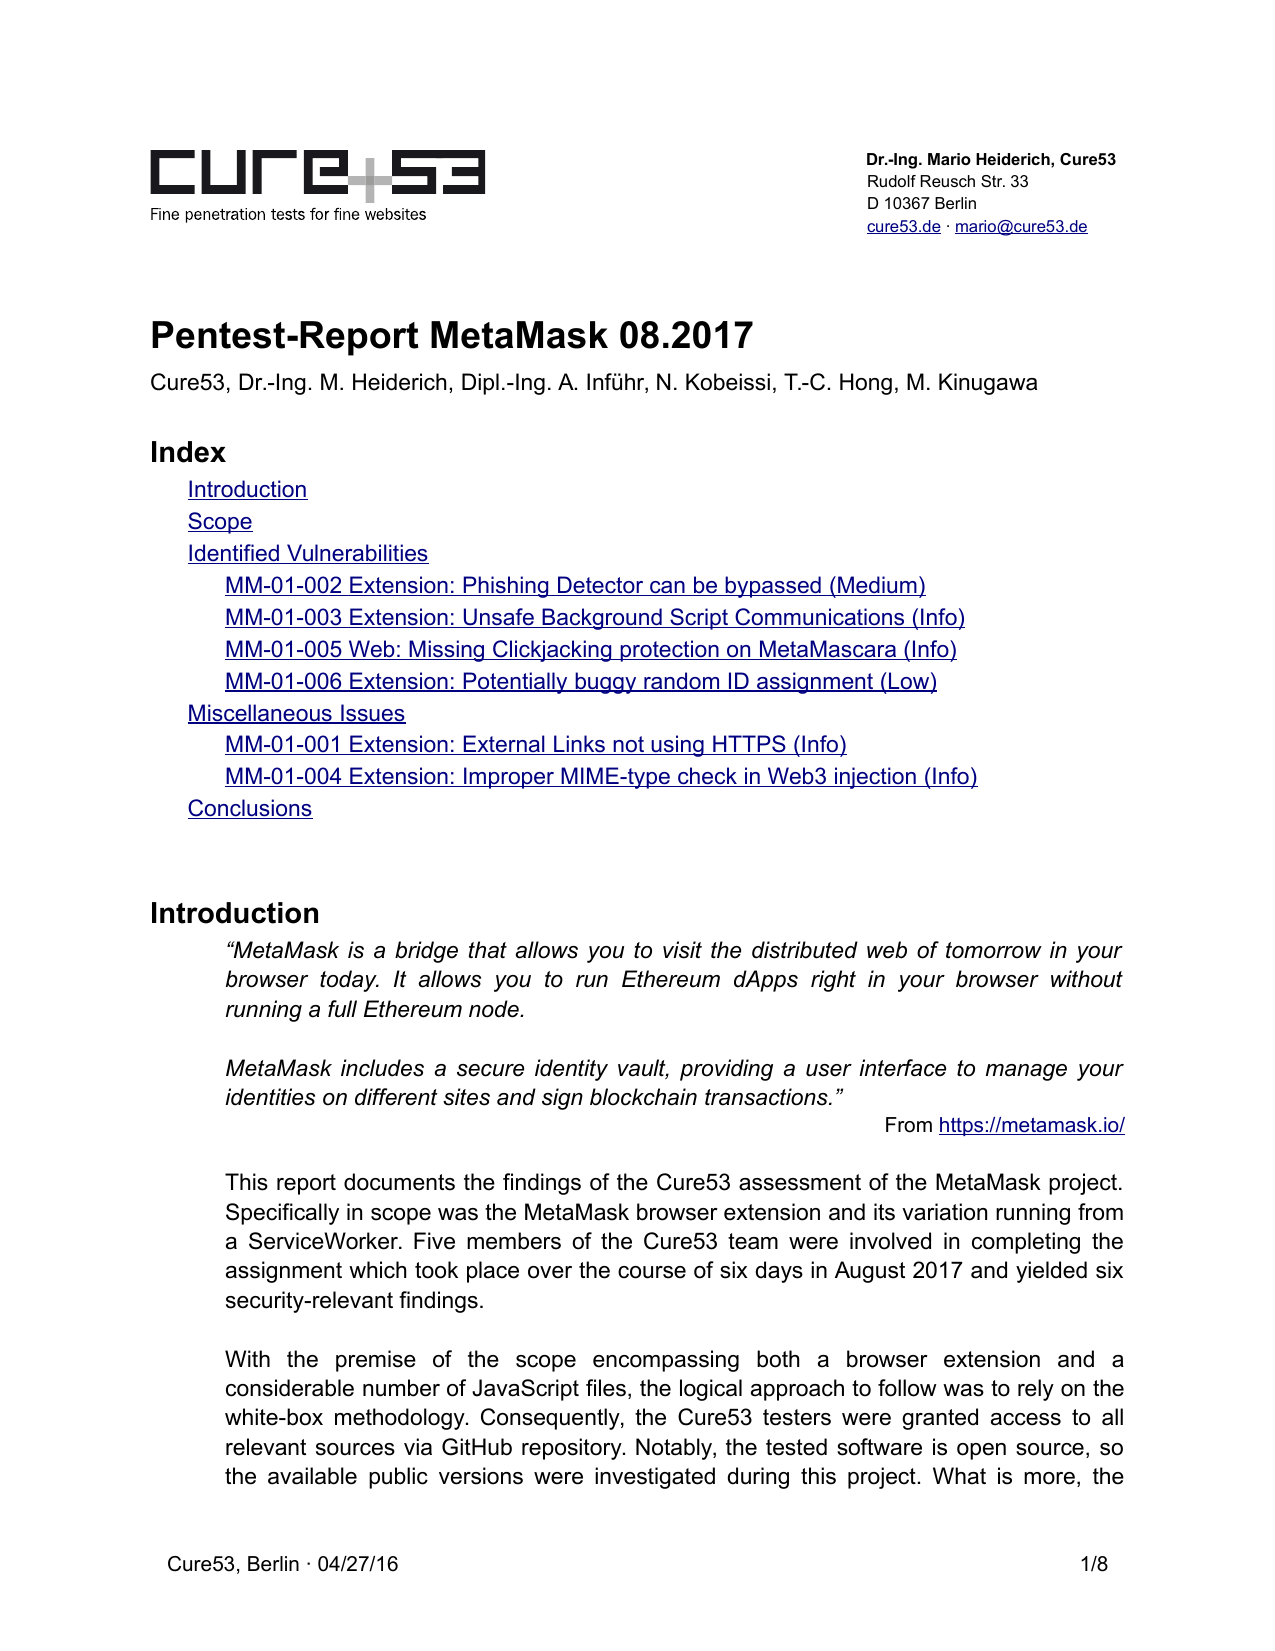 First page of the 'pentest-report metamask' PDF